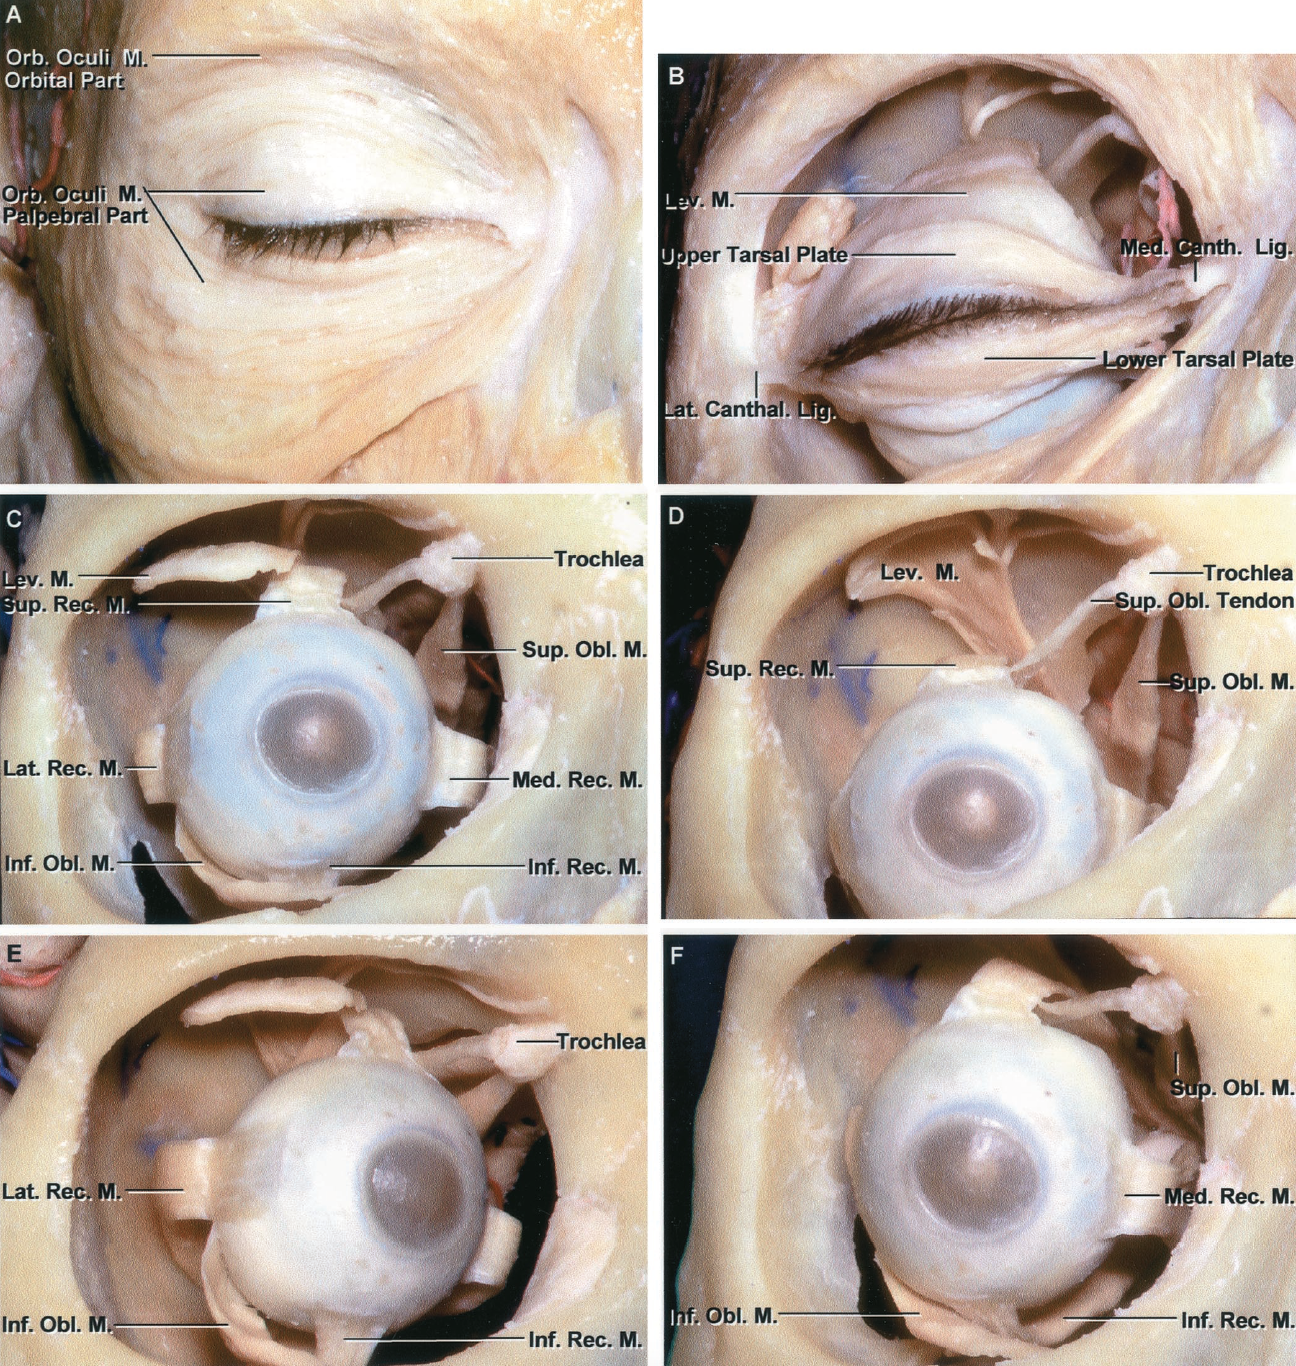 FIGURE 7.9. Anterior view of orbit and extraocular muscles. A, the skin around the right orbit has been removed to expose the orbicularis oculi muscle. This muscle surrounds the circumference of the orbit and spreads out on the temple and cheek. It has orbital, palpebral, and lacrimal parts. The orbital part of the orbicularis oculi spreads in a wide band around the margin of the orbit. The palpebral part is located in the margins of the eyelids. The orbital part arises from the nasal process of the frontal bone, the frontal process of the maxilla, and the medial palpebral ligament. On the lateral side, it blends with the occipitofrontalis and the corrugator muscles. Many of the upper orbital fibers are inserted into the skin and subcutaneous tissues of the eyebrow. The palpebral part arises from the medial palpebral ligament and the bone above and below the ligament. Some of its fibers lie close to the margin of the eyelid behind the eyelashes. The lacrimal part extends behind the lacrimal sac and attaches to the lacrimal bone. The orbicularis oculi is the sphincter muscle of the eyelids. The palpebral portion closes the eyelids. The actions of the lacrimal part are important in tear transport. B, the orbicular muscle has been removed to expose the upper and lower tarsi, thin plates of dense fibrous tissue situated deep to the palpebral part of the orbicularis oculi muscle. The tarsi are placed in and give support and shape to each eyelid. Some of the fibers of the levator muscle are attached to the upper tarsus. The medial ends of the tarsi are attached by a tendinous band, the medial canthal ligament, to the upper part of the lacrimal crest and the adjoining part of the frontal process of the maxilla in front of the lacrimal crest. The lateral ends of the tarsi are attached by a band, the lateral canthal ligament, to a tubercle on the zygomatic bone immediately within the orbital margin. The orbital septum that separates the facial from the orbital structures has